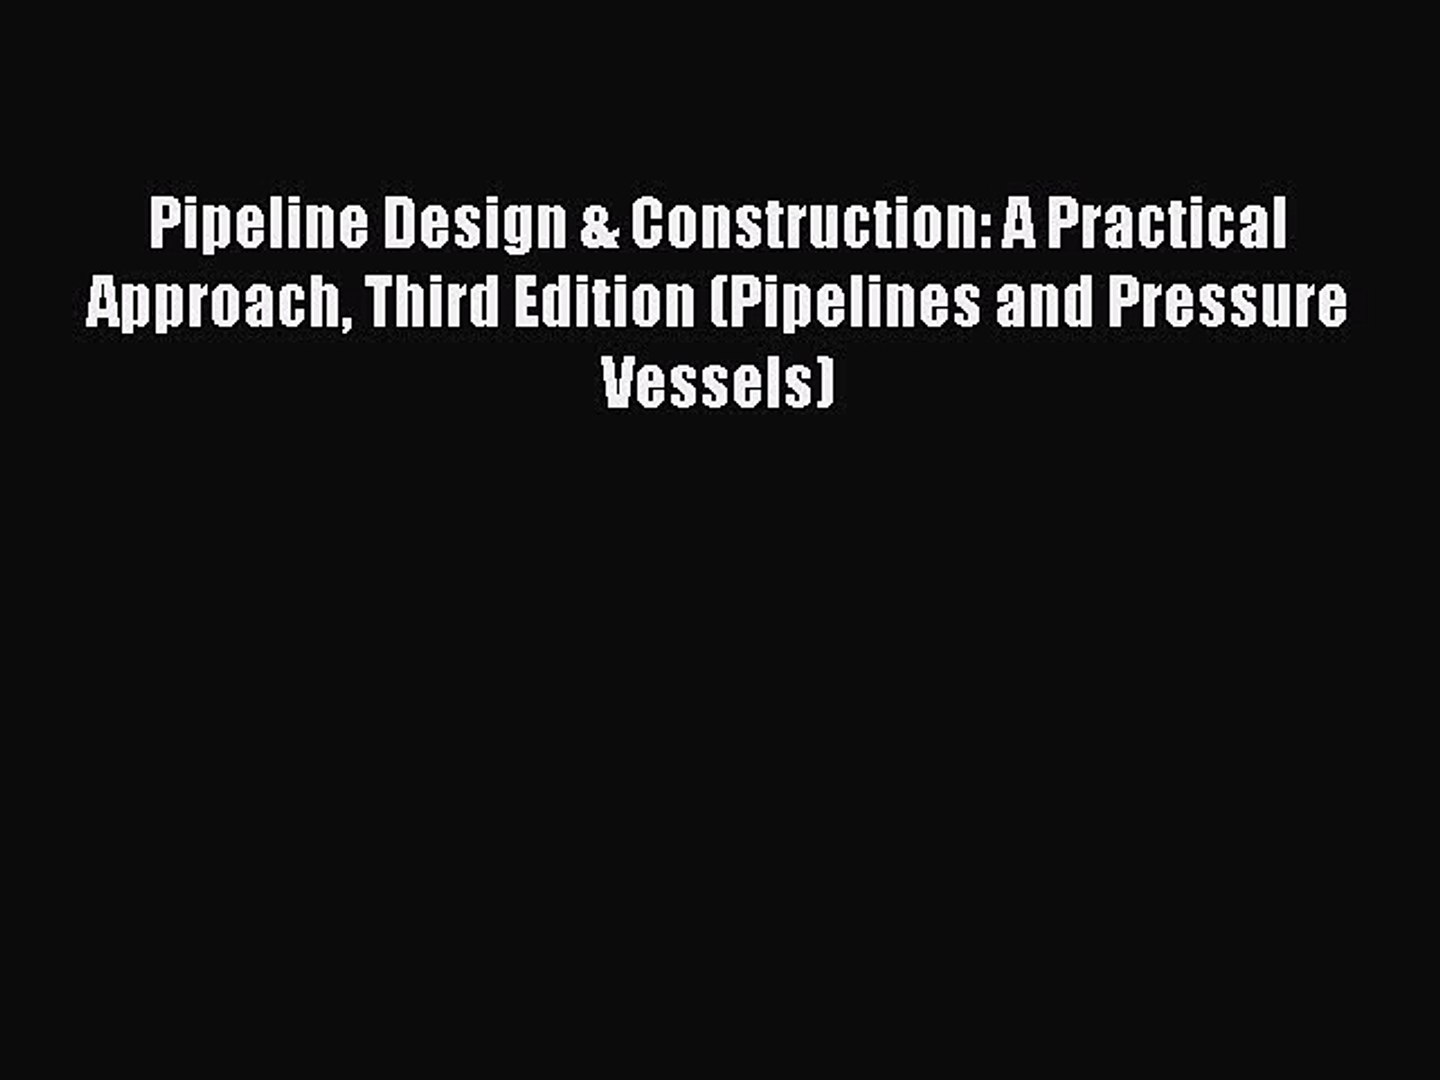 Read Pipeline Design & Construction: A Practical Approach Third Edition (Pipelines and Pressure